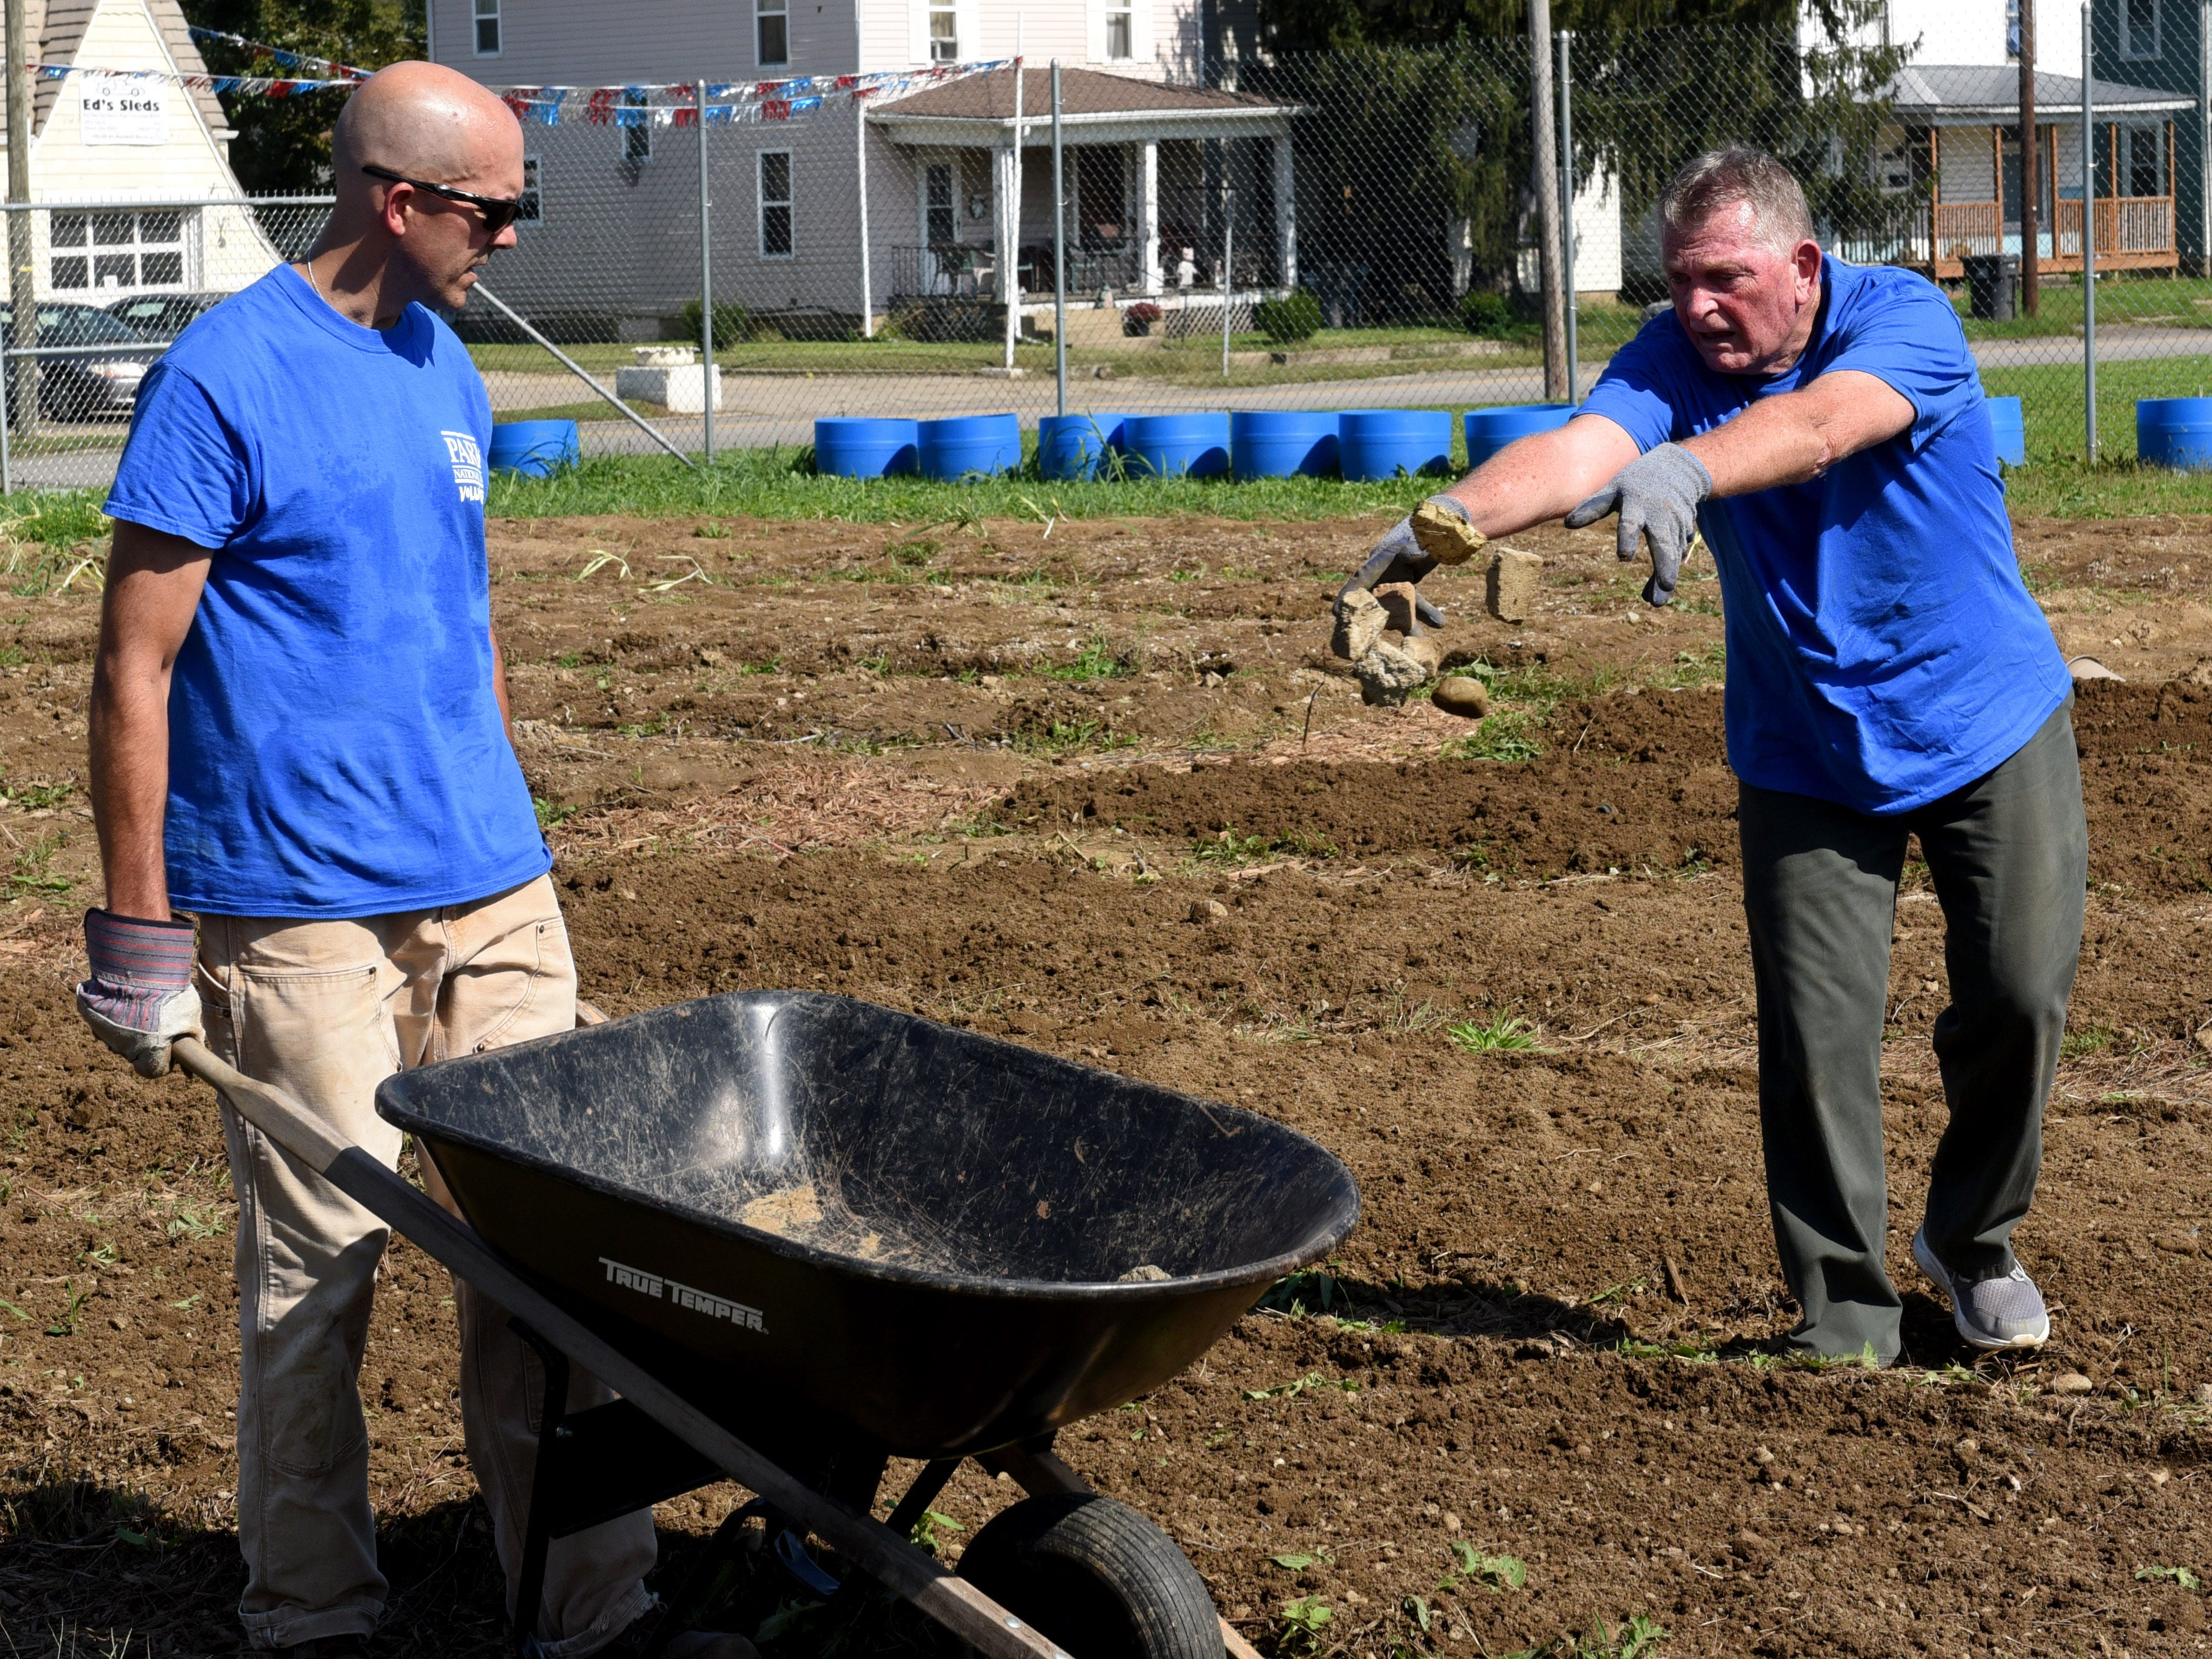 Park National Bank employee Phil West (right) tosses rocks in to a wheelbarrow held by PNB president David Trautman at the Together We Grow Garden on East Main Street in Newark. Bank employees volunteered at the garden to prepare it for winter as part of the company's PNB Cares initiative on Monday, Oct. 8, 2018. Employees worked on over 70 projects for organizations in Central Ohio communities. Local projects also included landscaping at the Weathervane Playhouse, organizing books for the Licking County Library, and painting for the Licking County Coalition for Housing.